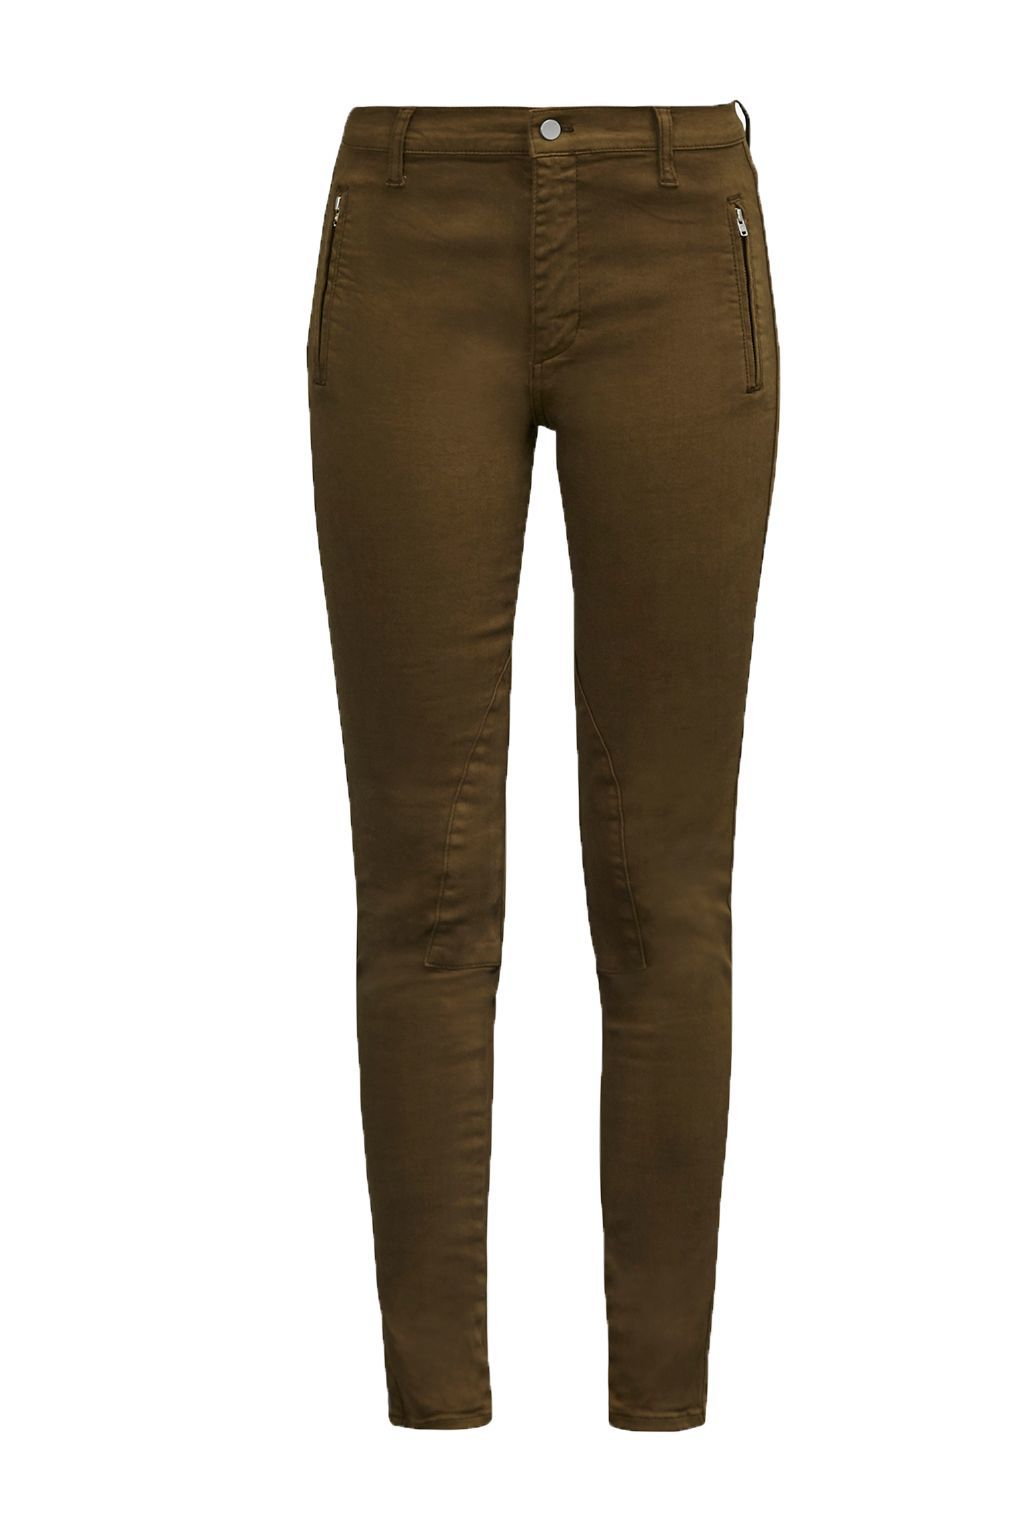 The Rebound Jodhpur Jeans, Green - style: skinny leg; length: standard; pattern: plain; waist: mid/regular rise; predominant colour: khaki; occasions: casual; fibres: cotton - stretch; texture group: denim; pattern type: fabric; season: a/w 2016; wardrobe: highlight